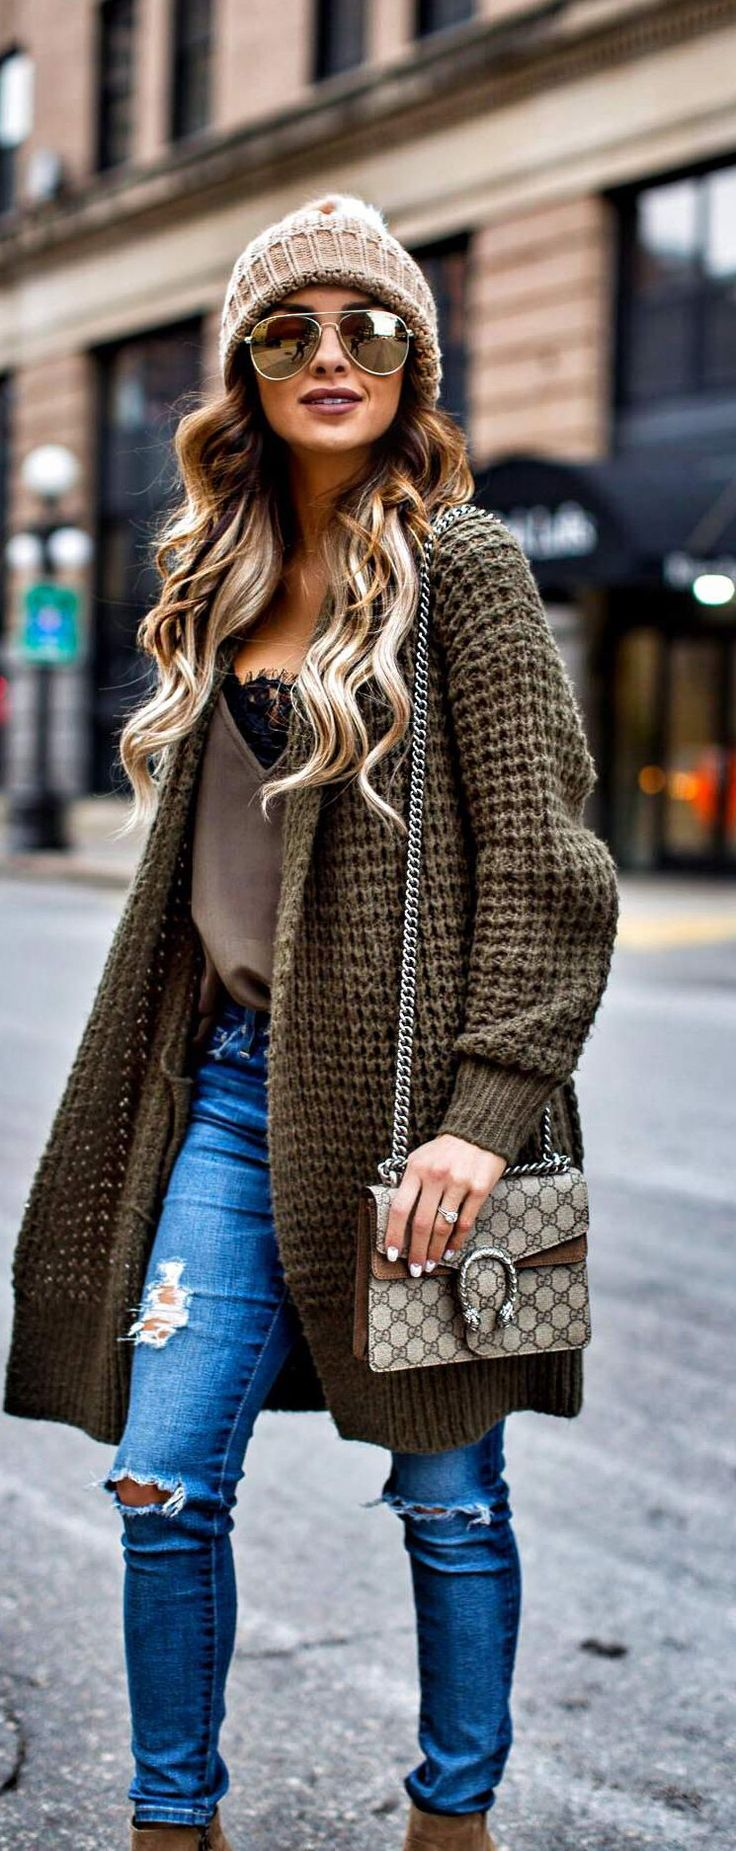 Best 25+ Women's winter fashion ideas on Pinterest | Classy winter ...